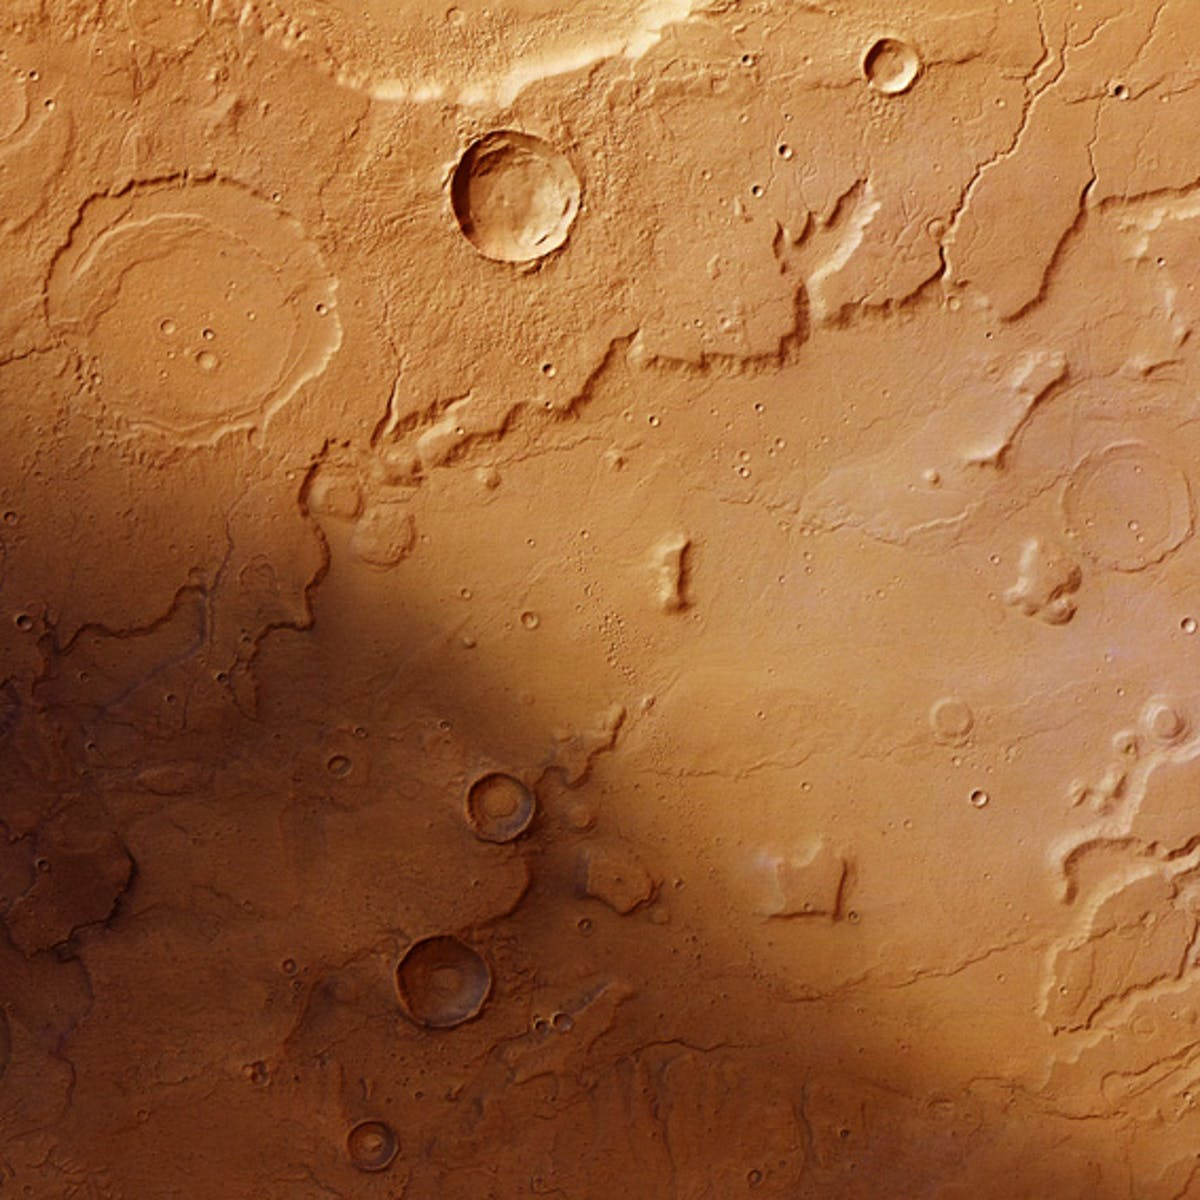 """Mars, a """"One-Plate Planet,"""" Was Once Soaked by a Global Groundwater System"""